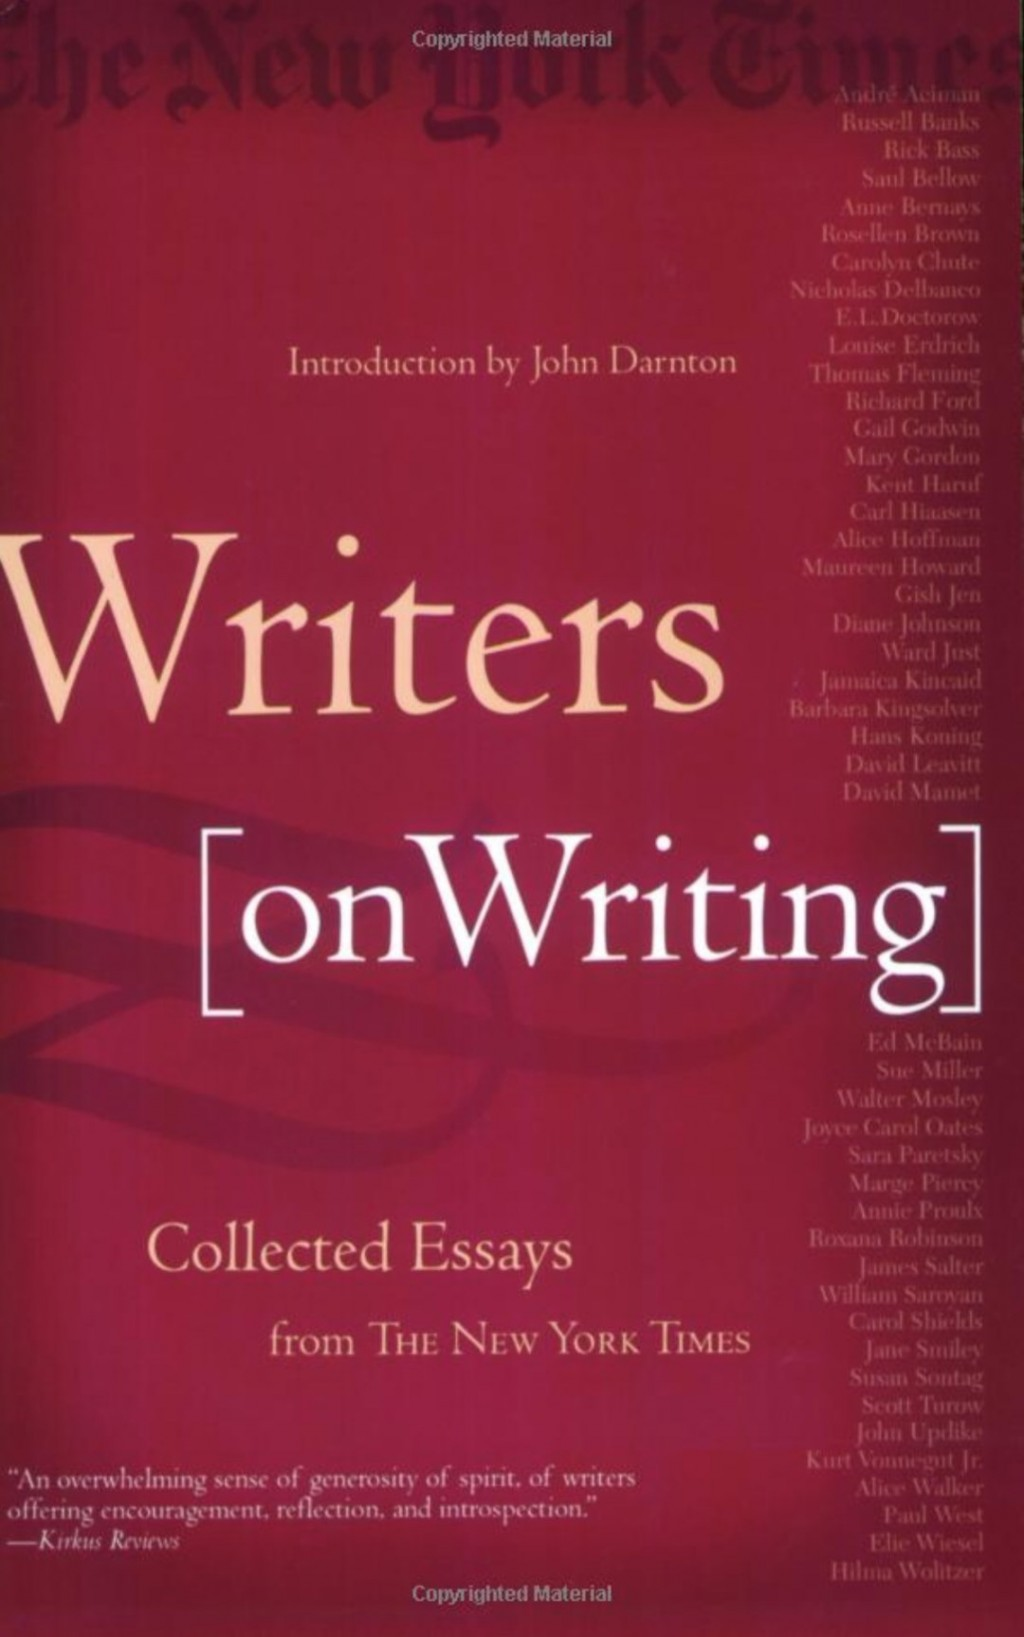 023 Collected Essays Essay Example Cover Writers On Rare The Journalism And Letters Of George Orwell Volume 3 Ralph Ellison Aldous Huxley Pdf Large